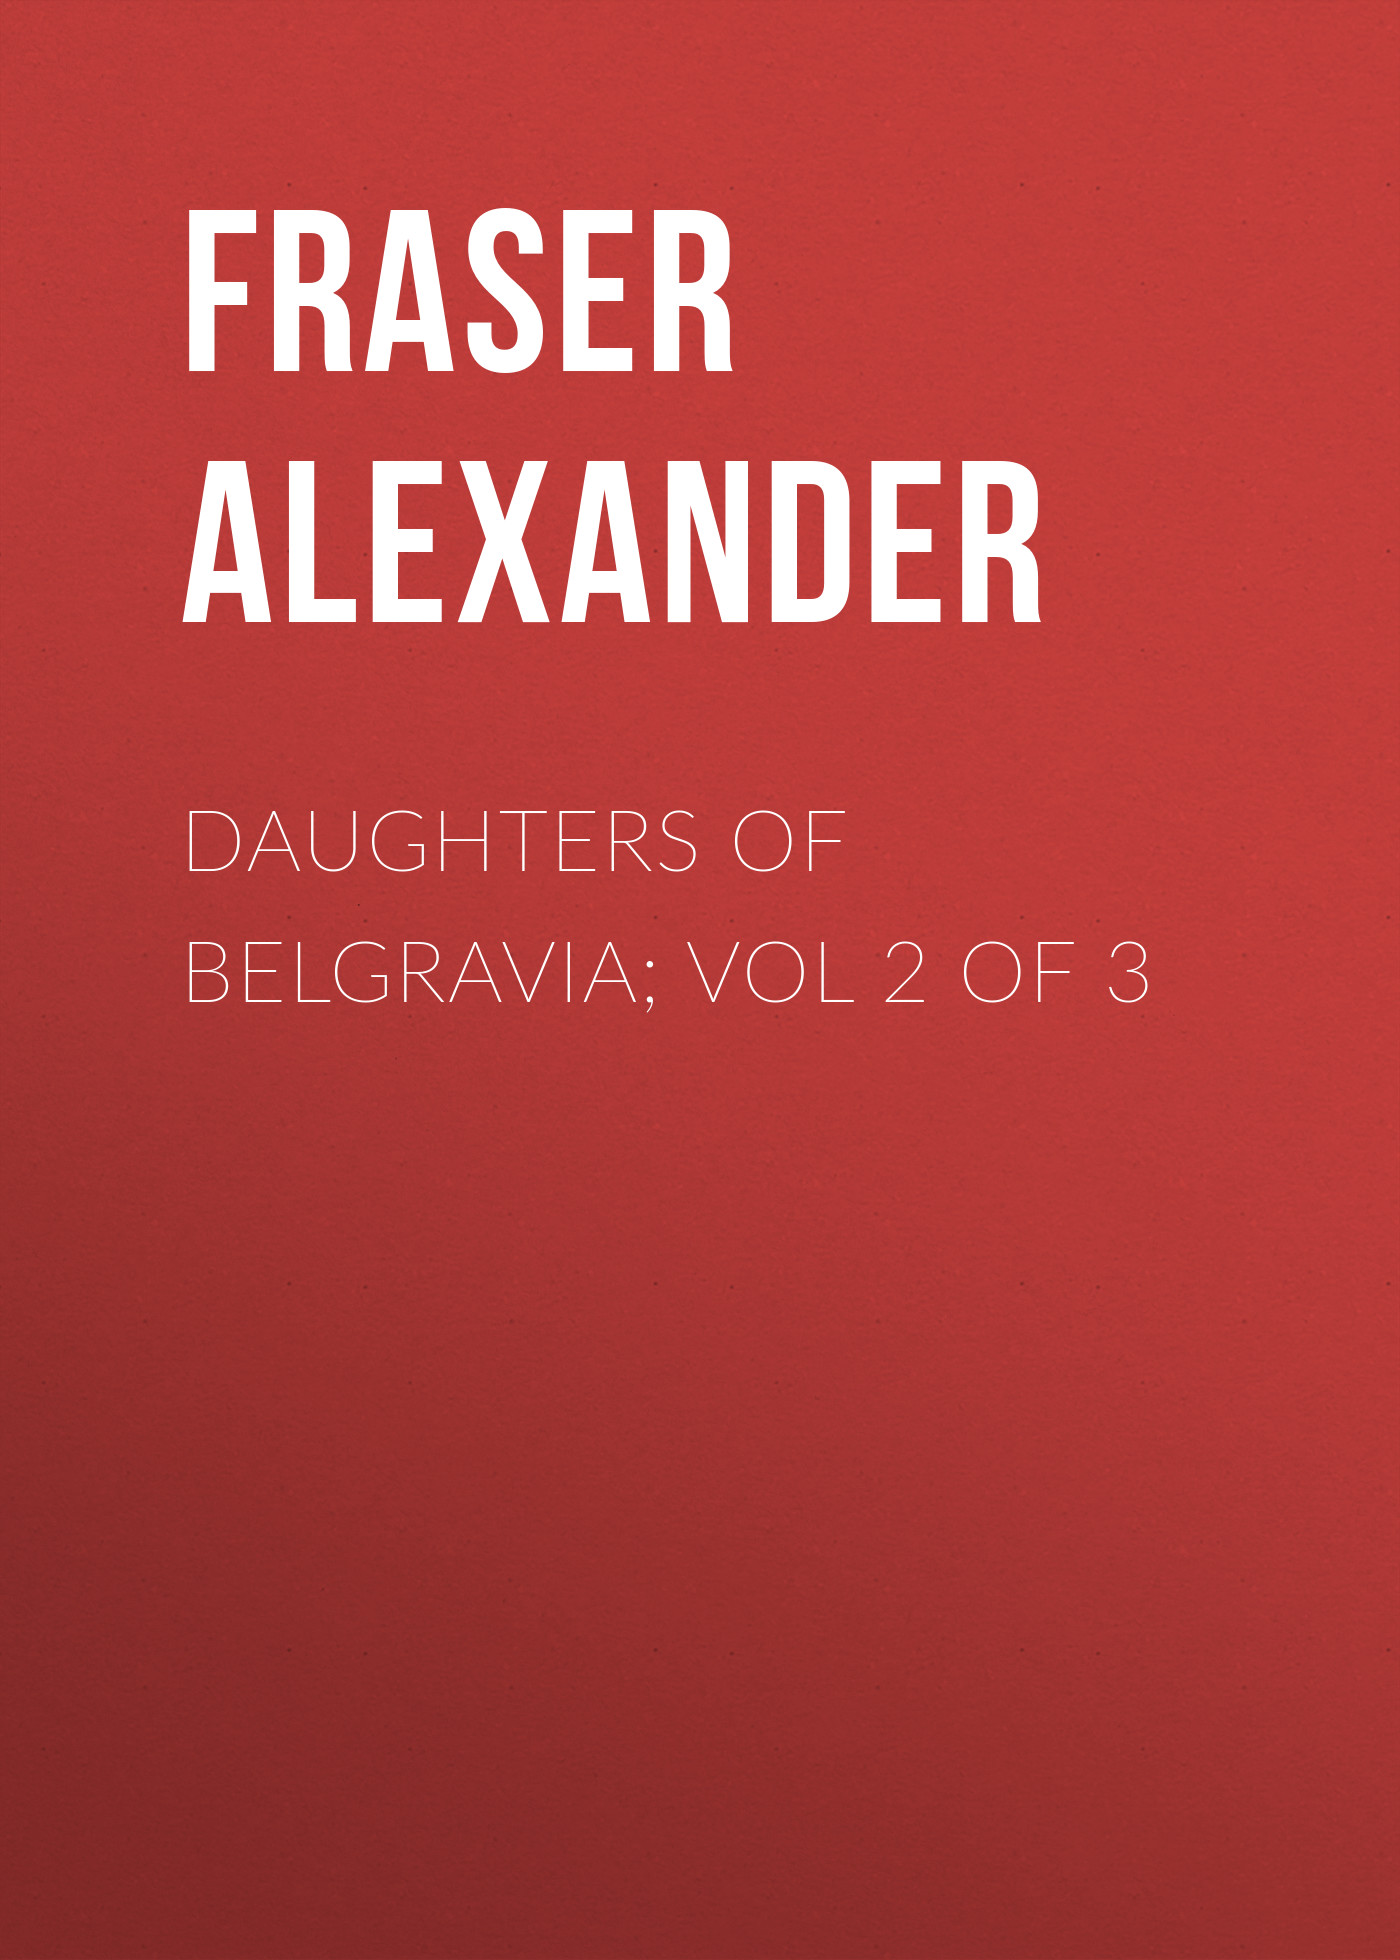 Fraser Alexander Daughters of Belgravia; vol 2 of 3 цена